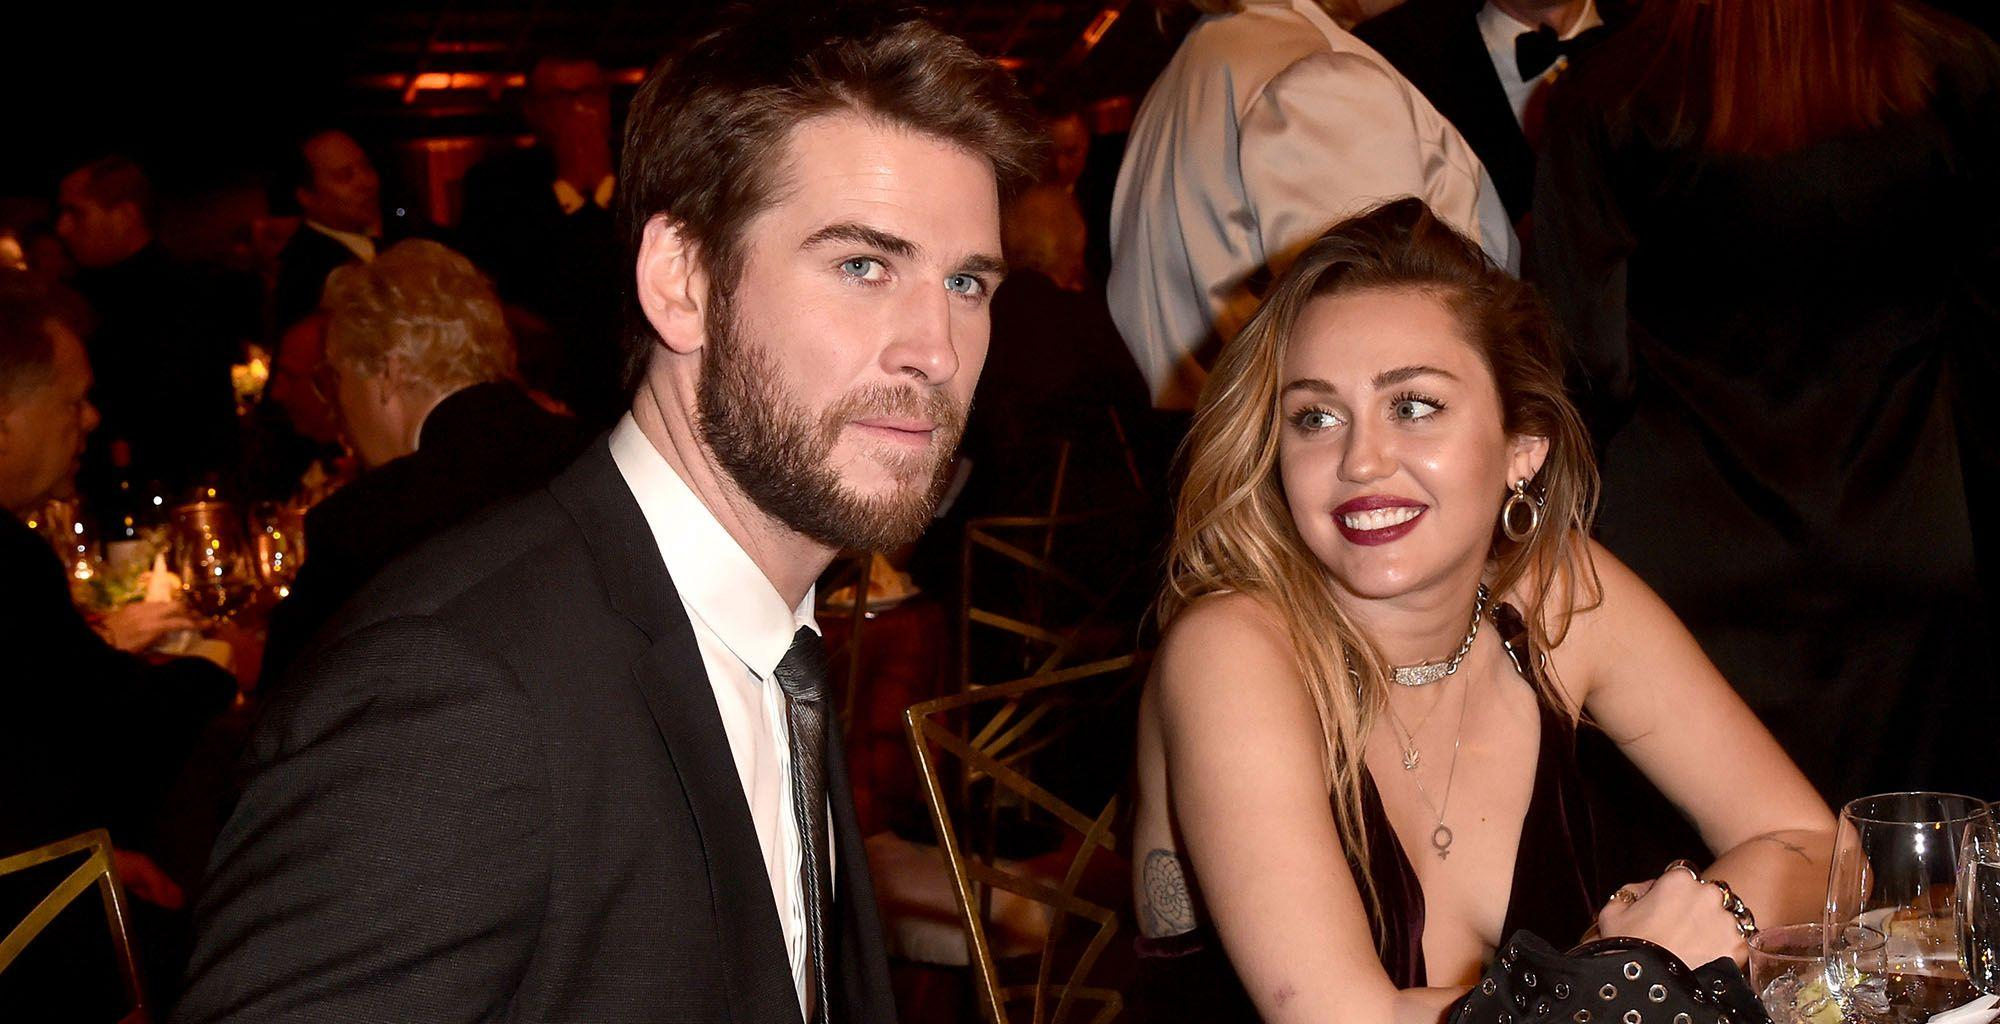 Miley Cyrus 'Didn't Spend Much Time' Crying After Her Liam Hemsworth Split - Here's Why!